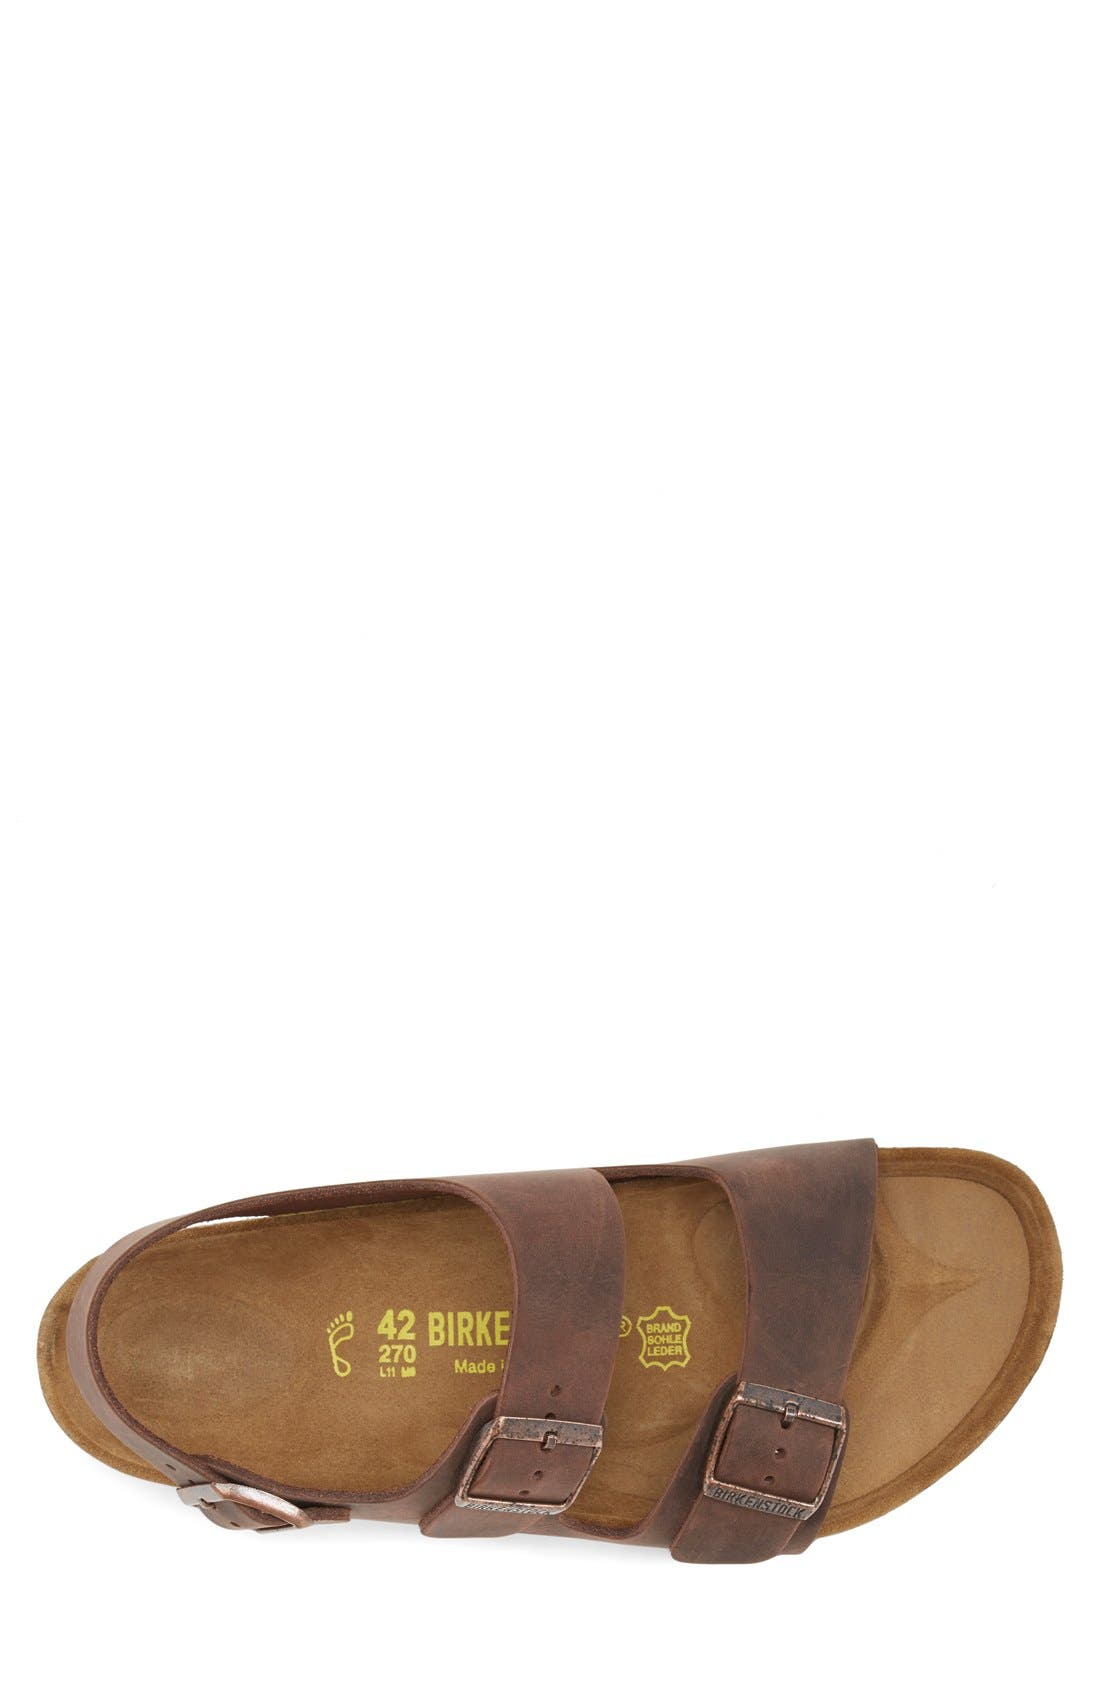 Alternate Image 3  - Birkenstock 'Milano' Sandal   (Men)